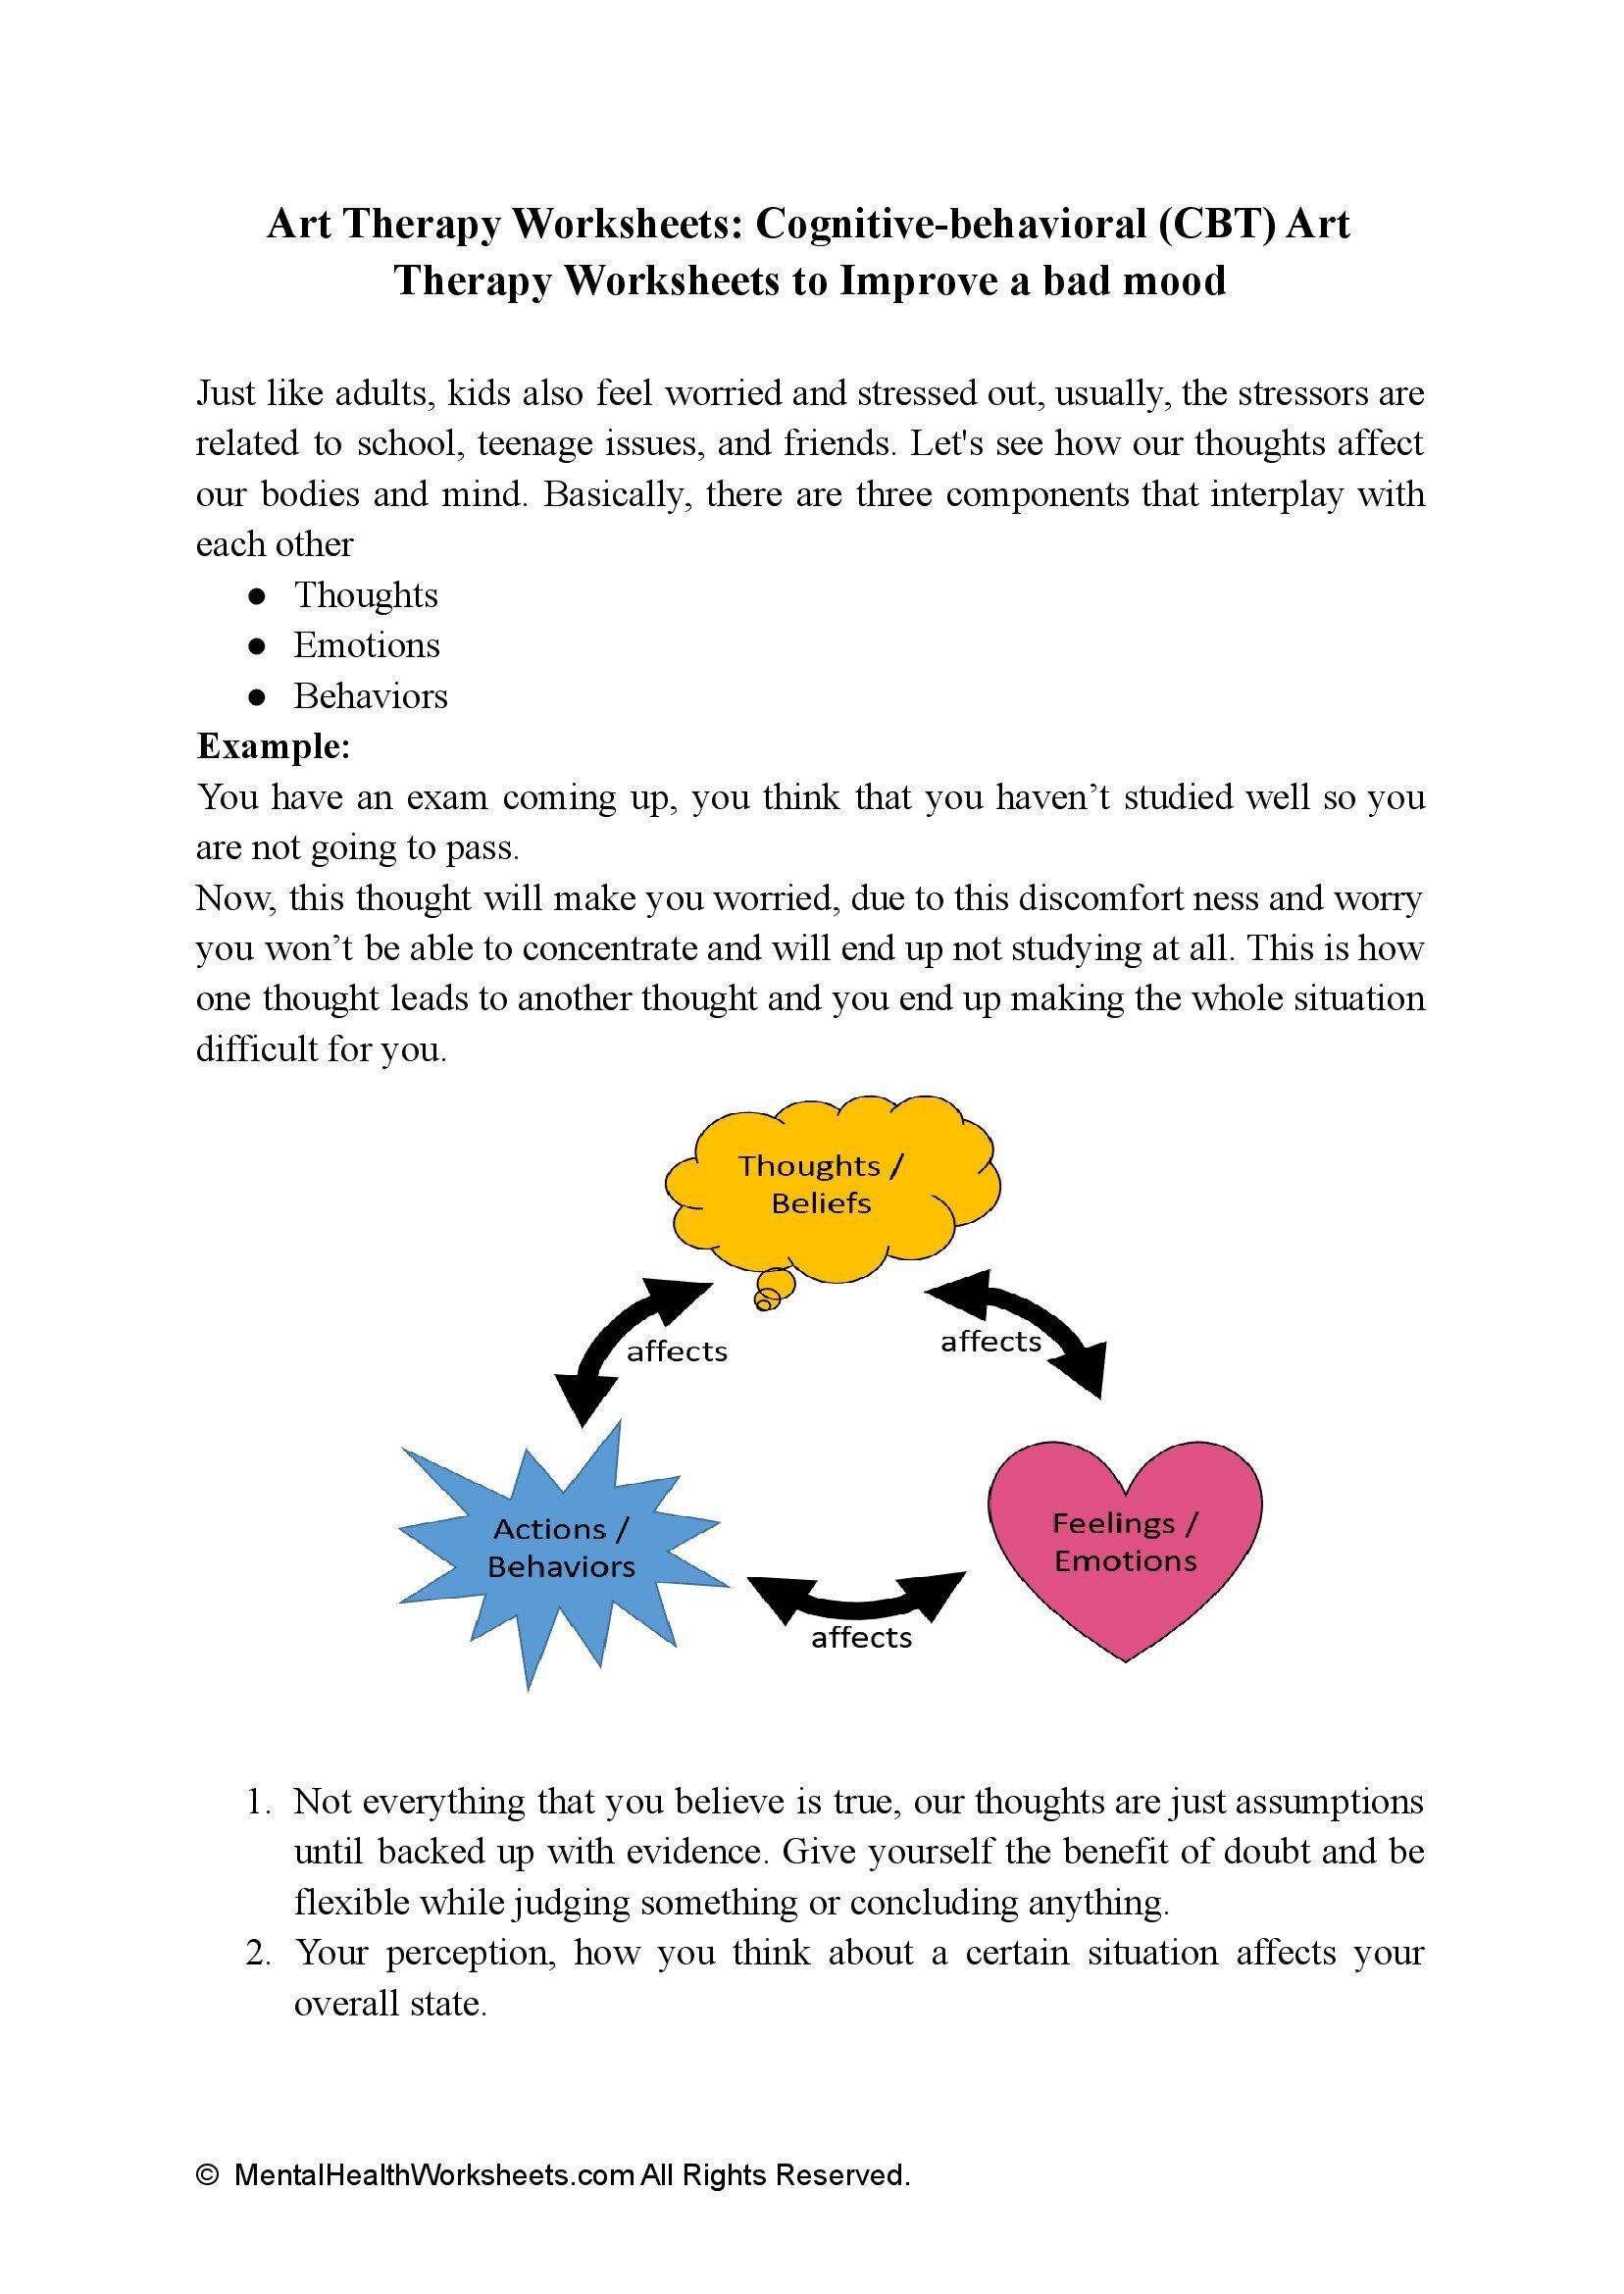 Art Therapy Worksheets: Cognitive-behavioral (CBT) Art Therapy Worksheets to Improve a bad mood